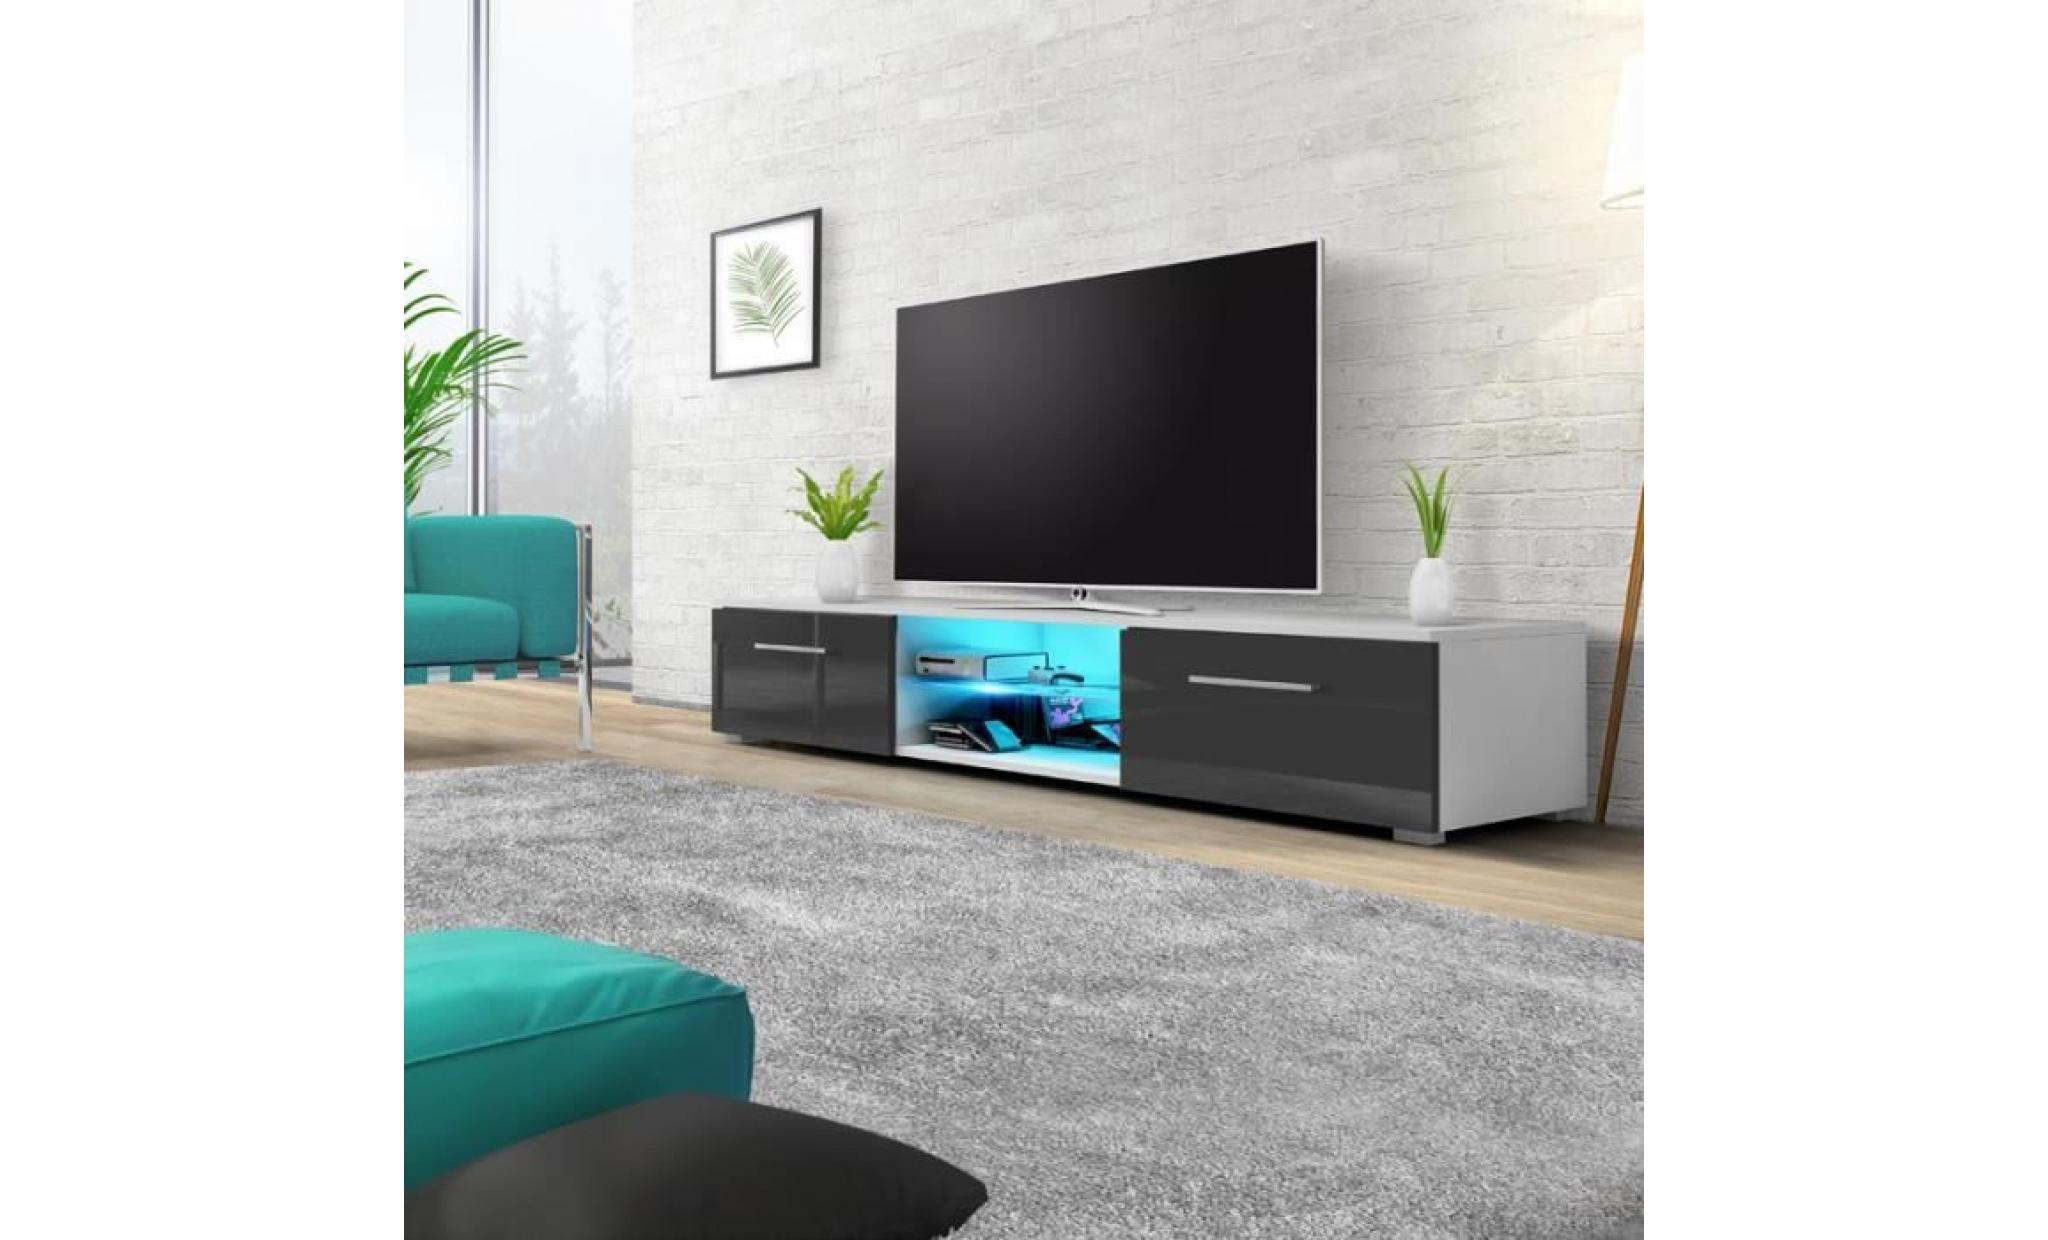 Meuble Salon Tv Meuble Tv Meuble Salon Edith 140 Cm Blanc Mat Gris Brillant Avec Led Bleue Style Minimaliste Style Moderne